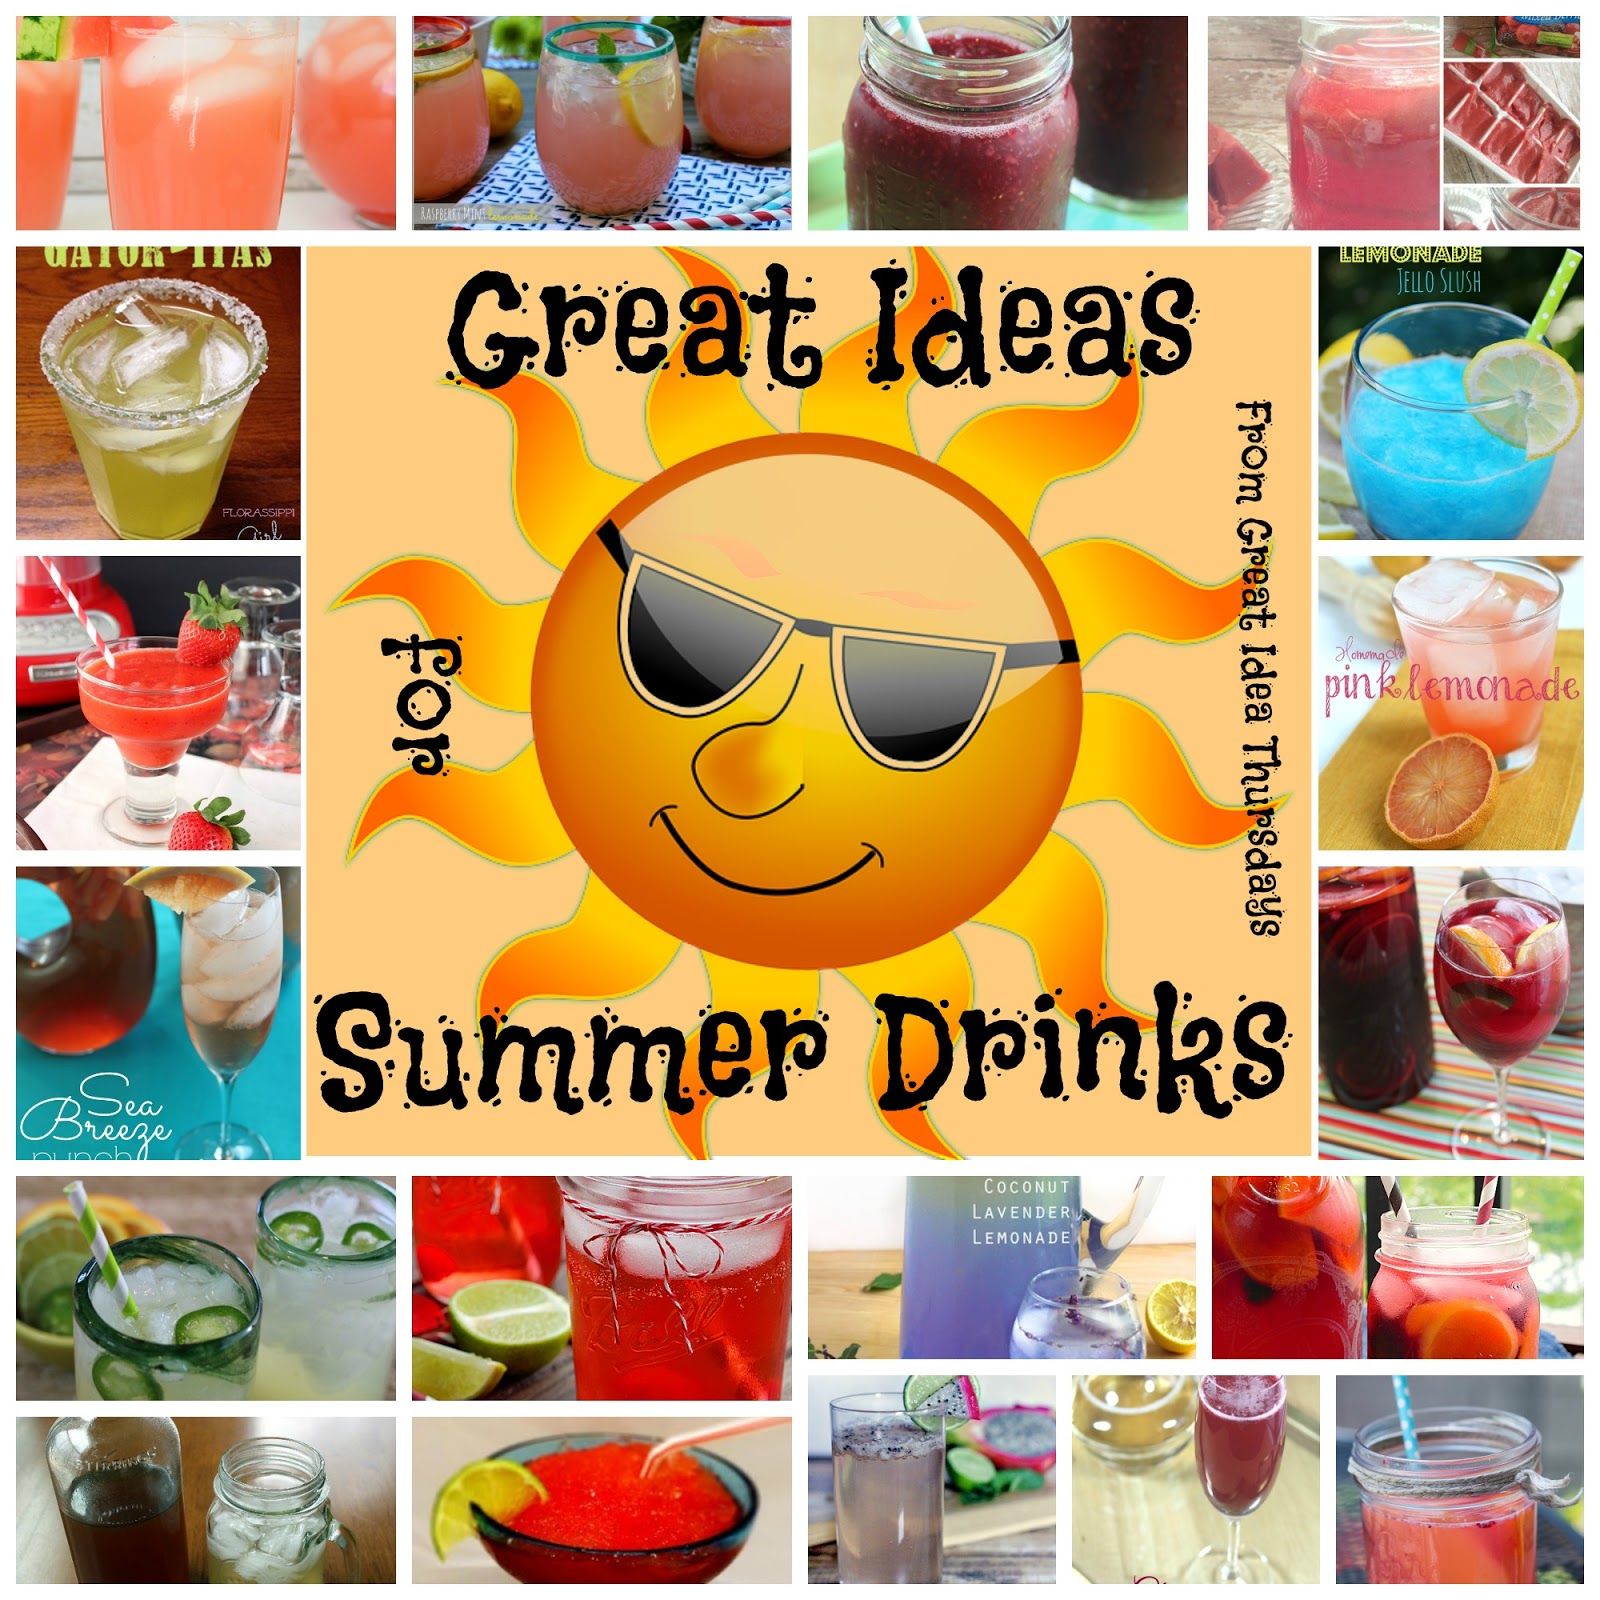 Great Ideas for Summer Drinks #roundup:  A Great Idea Thursdays roundup of great summer beverages.  Just in time for your 4th of July celebration (at least for those of us in the U.S.A.).